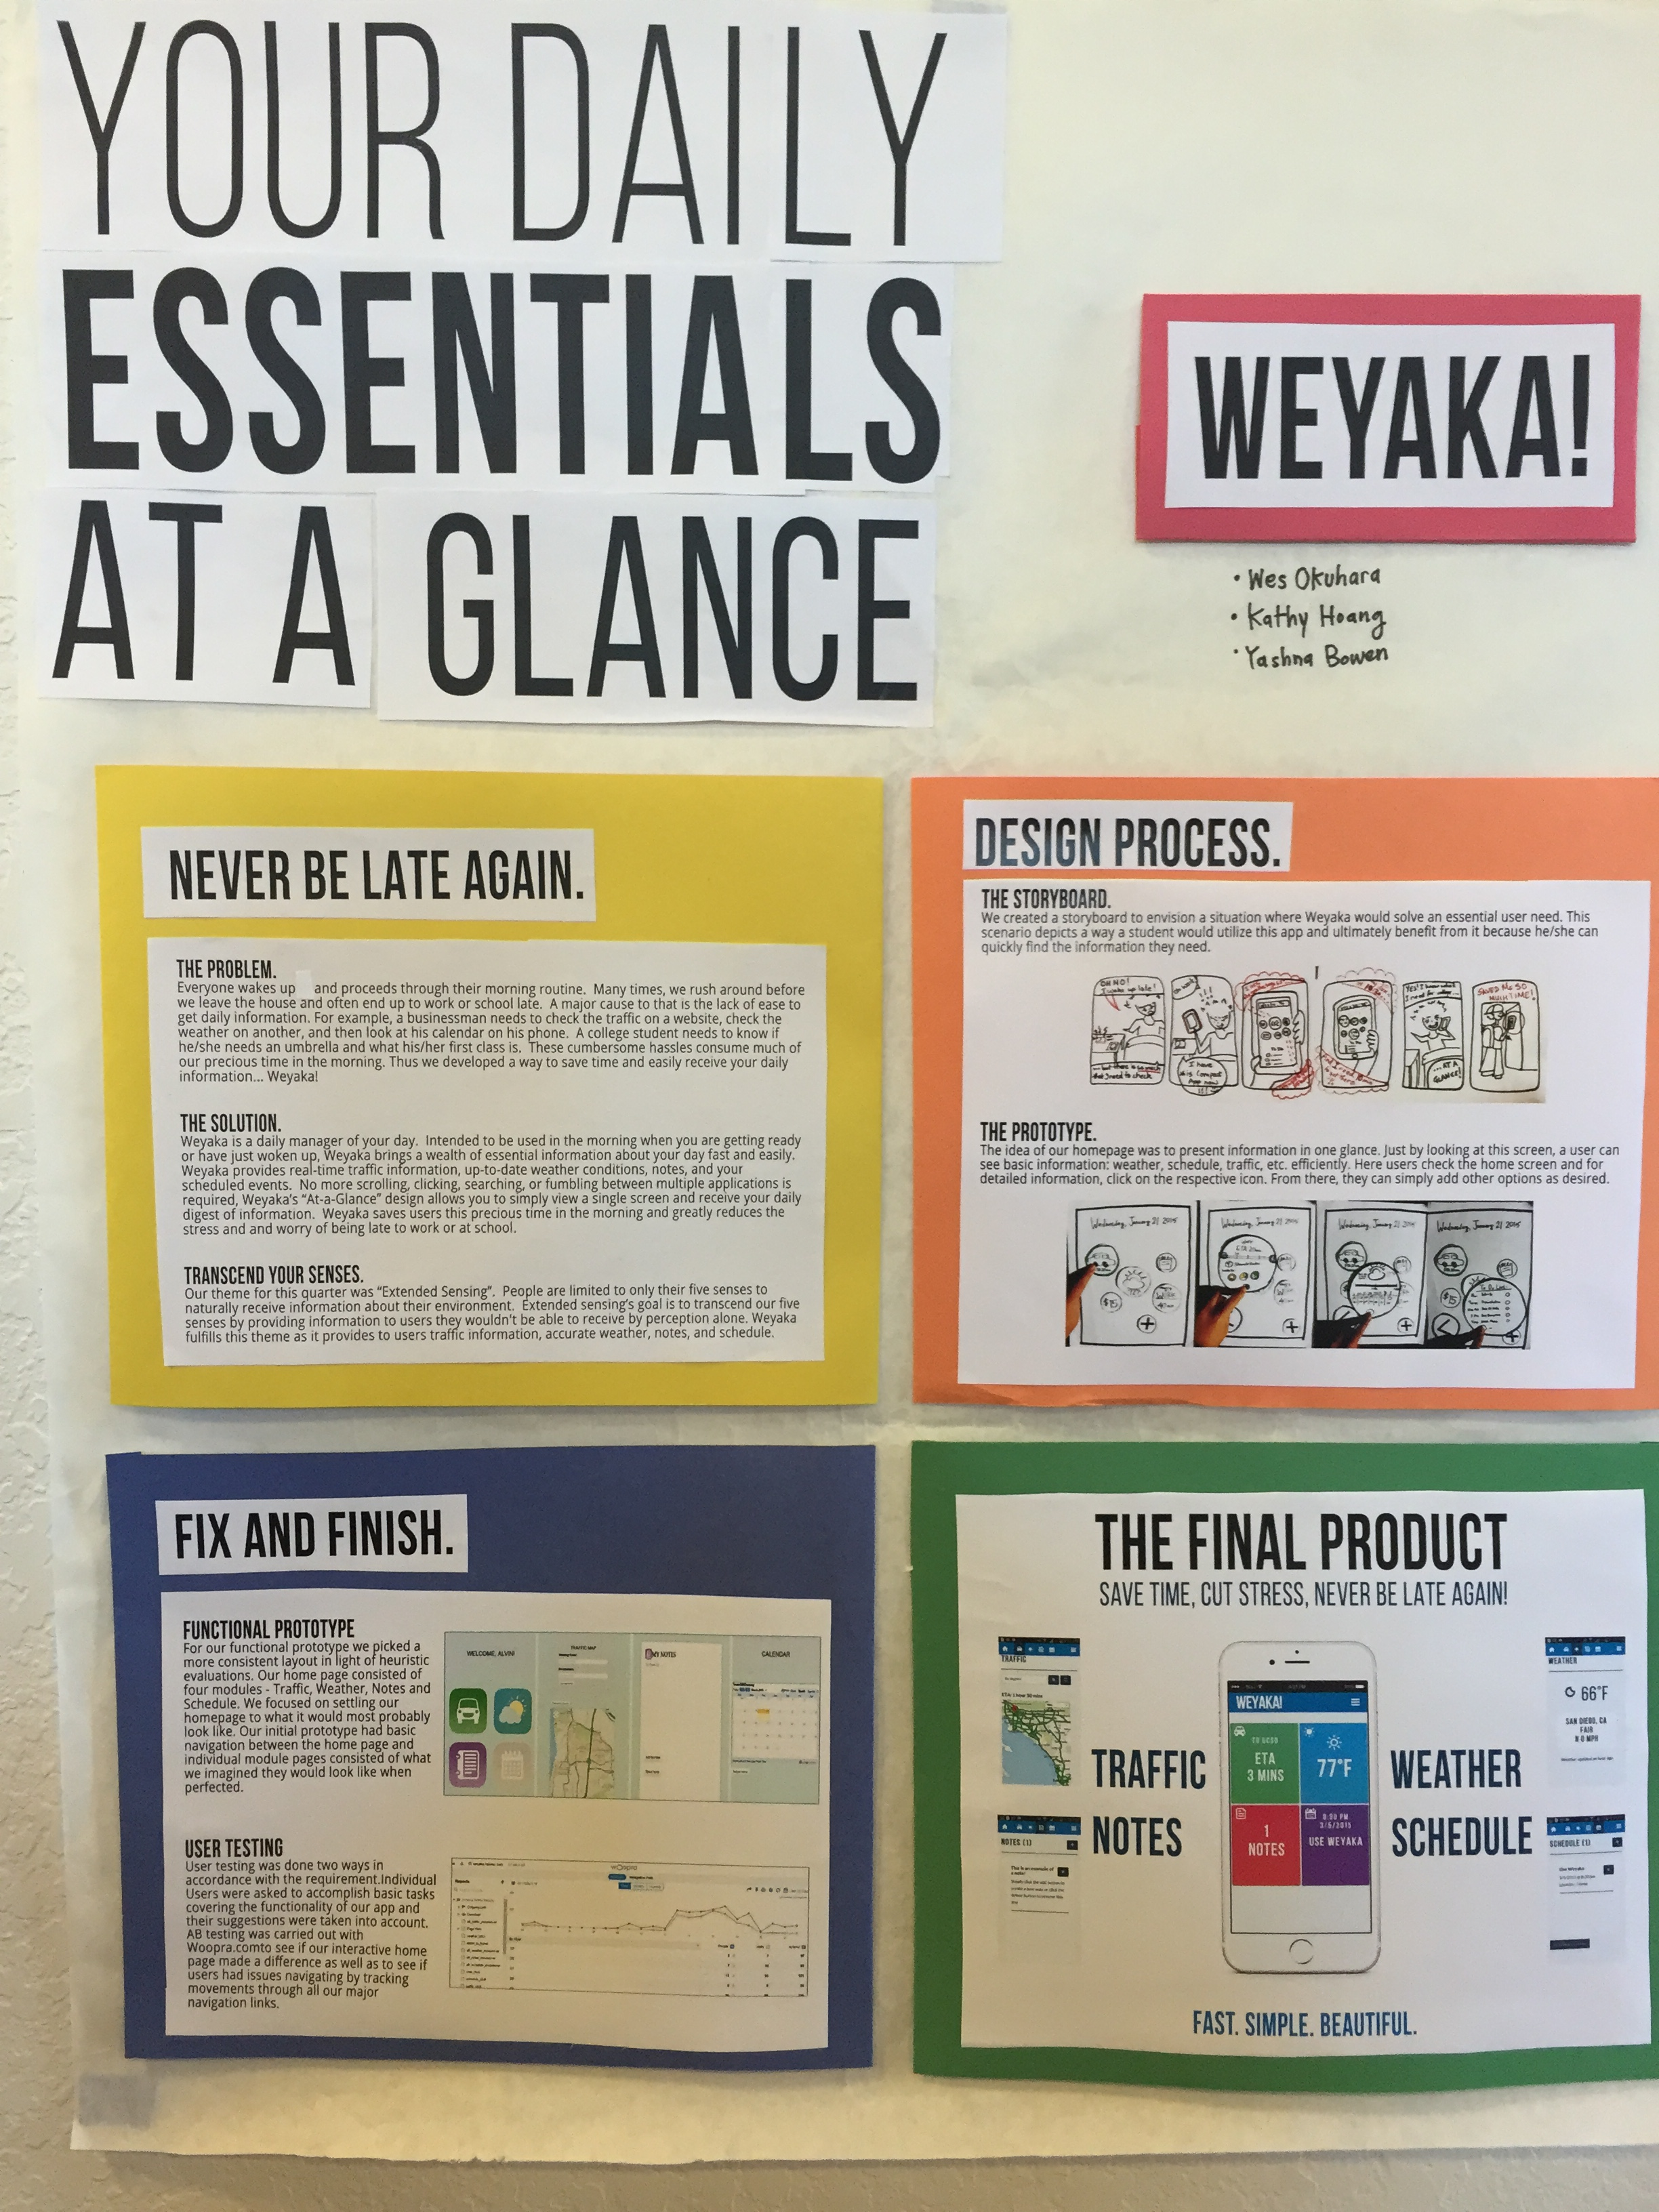 Poster design process - This Poster Is On Butcher Paper But Is Still Visually Appealing And Well Describes The App Design Process And Point Of View It Is Worthy Of An A